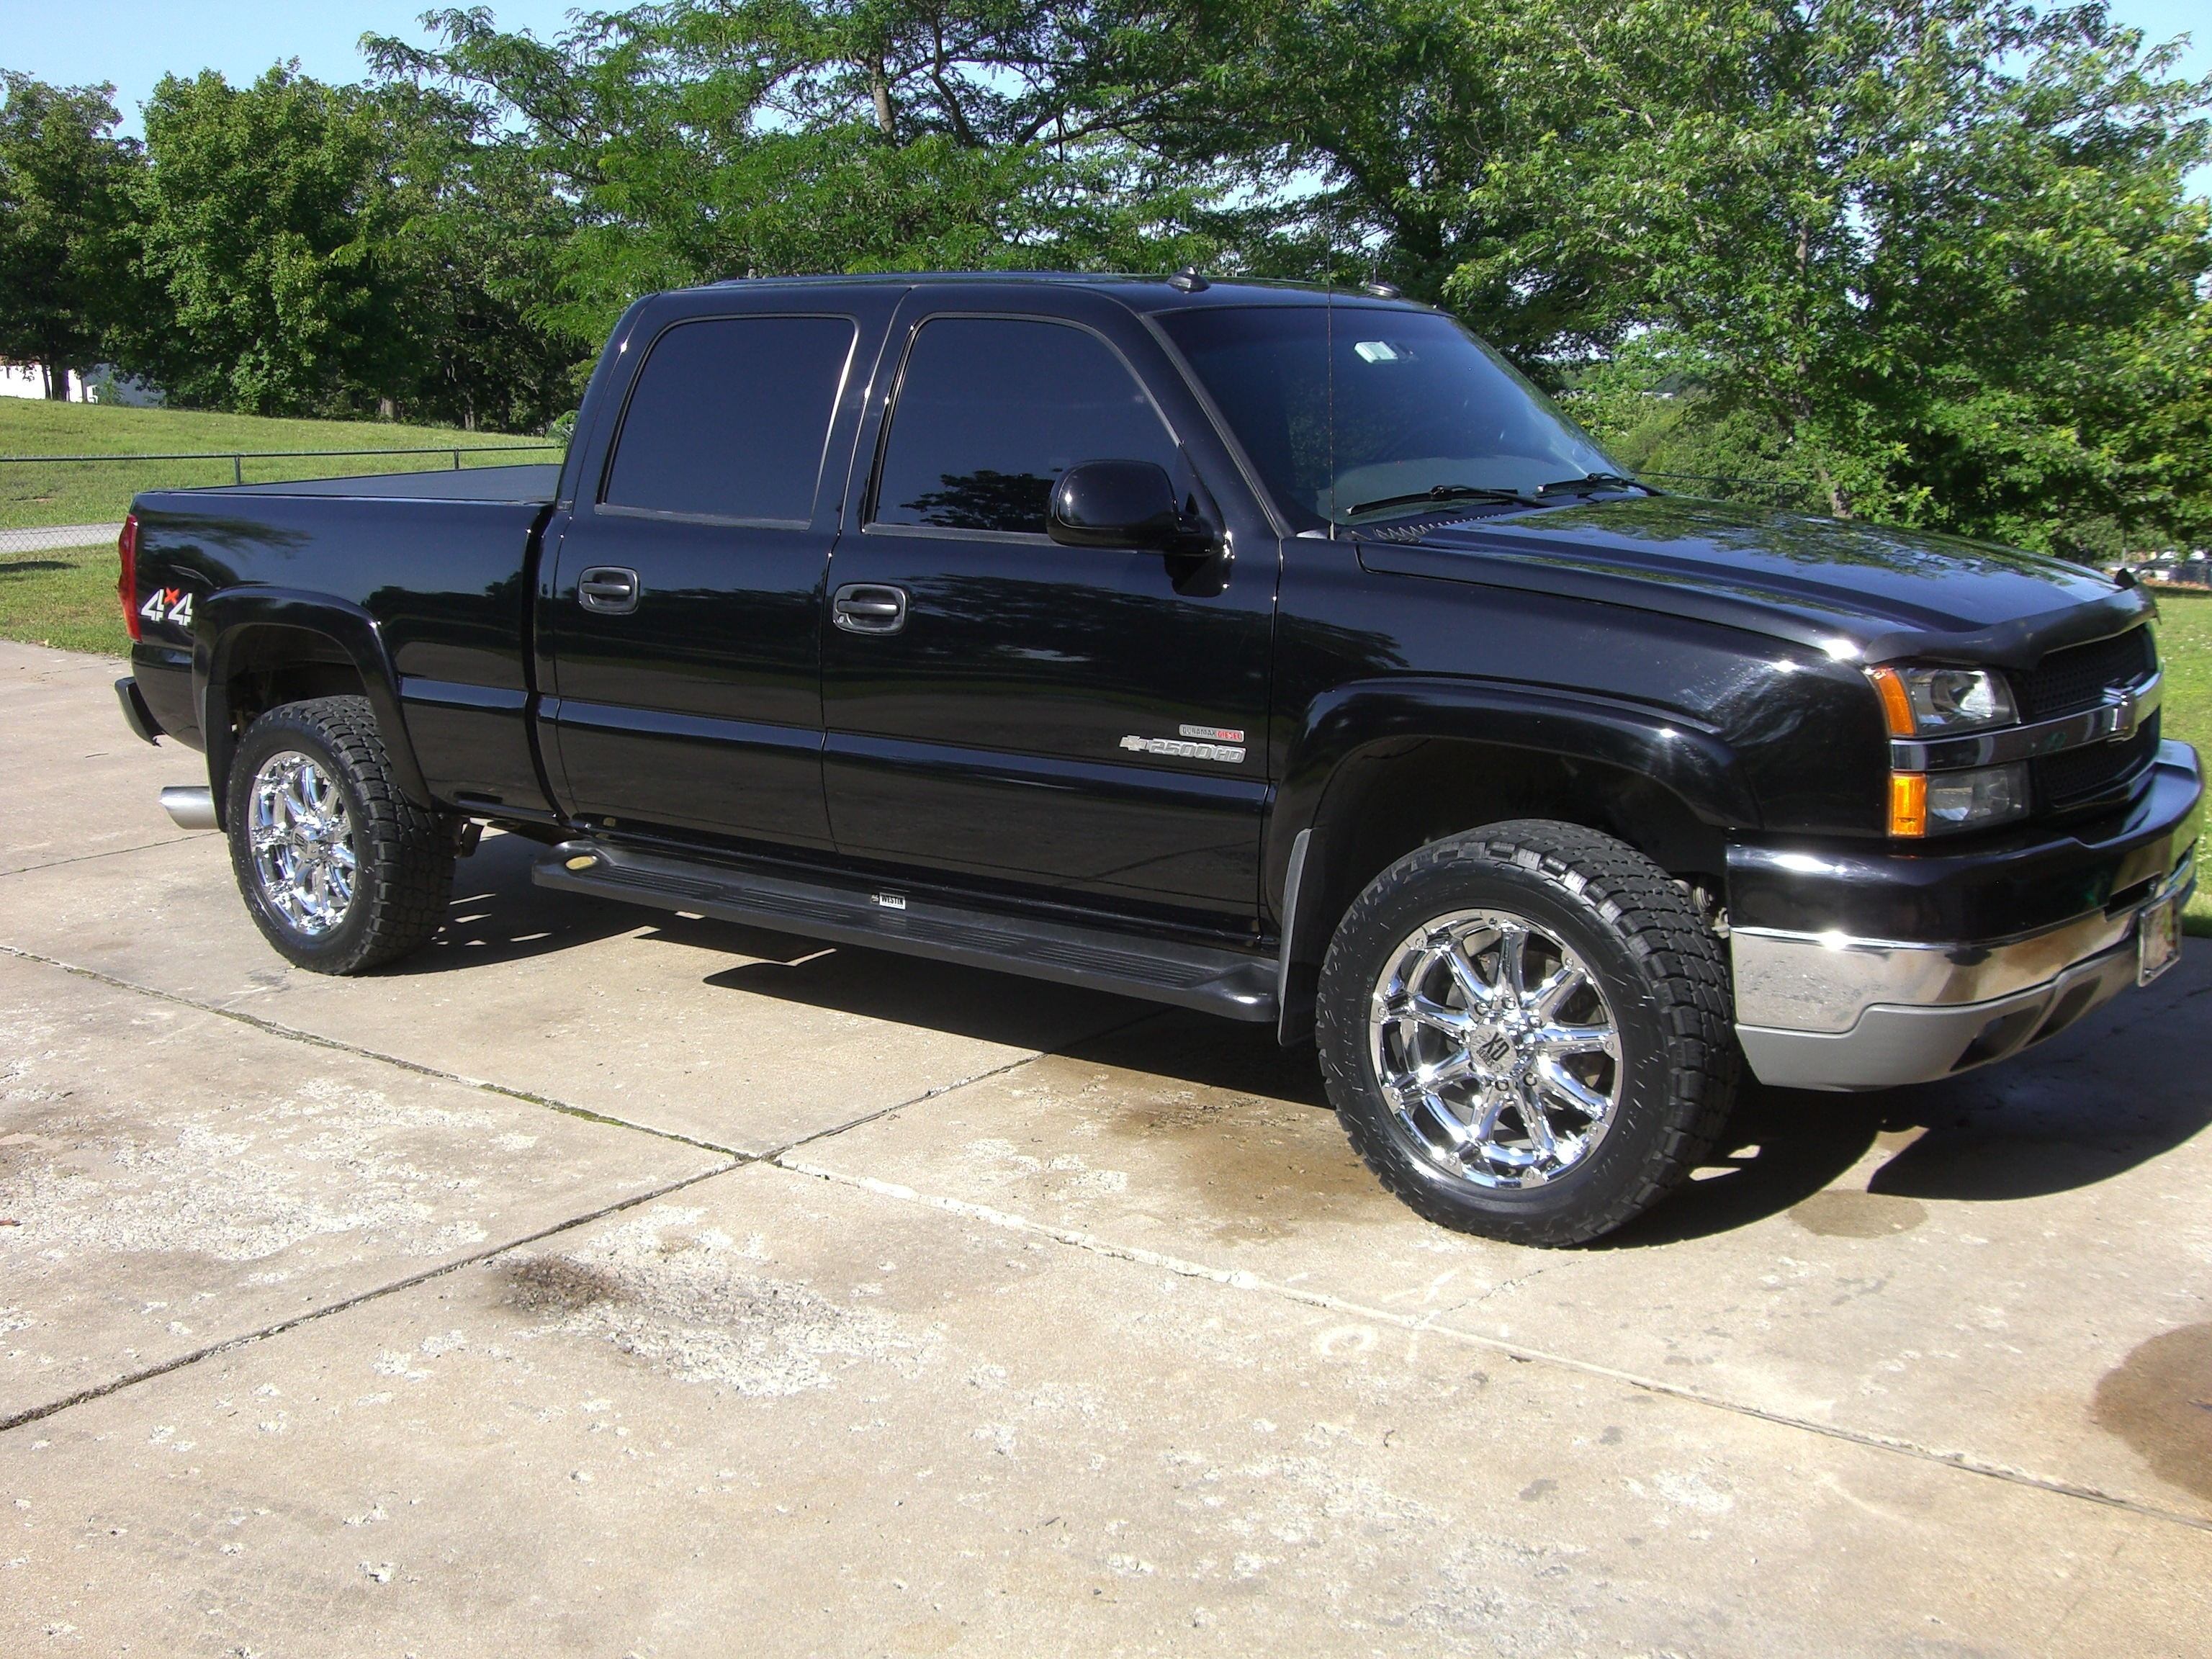 ryantruks 2003 chevrolet silverado 2500 hd crew cab specs photos modification info at cardomain. Black Bedroom Furniture Sets. Home Design Ideas